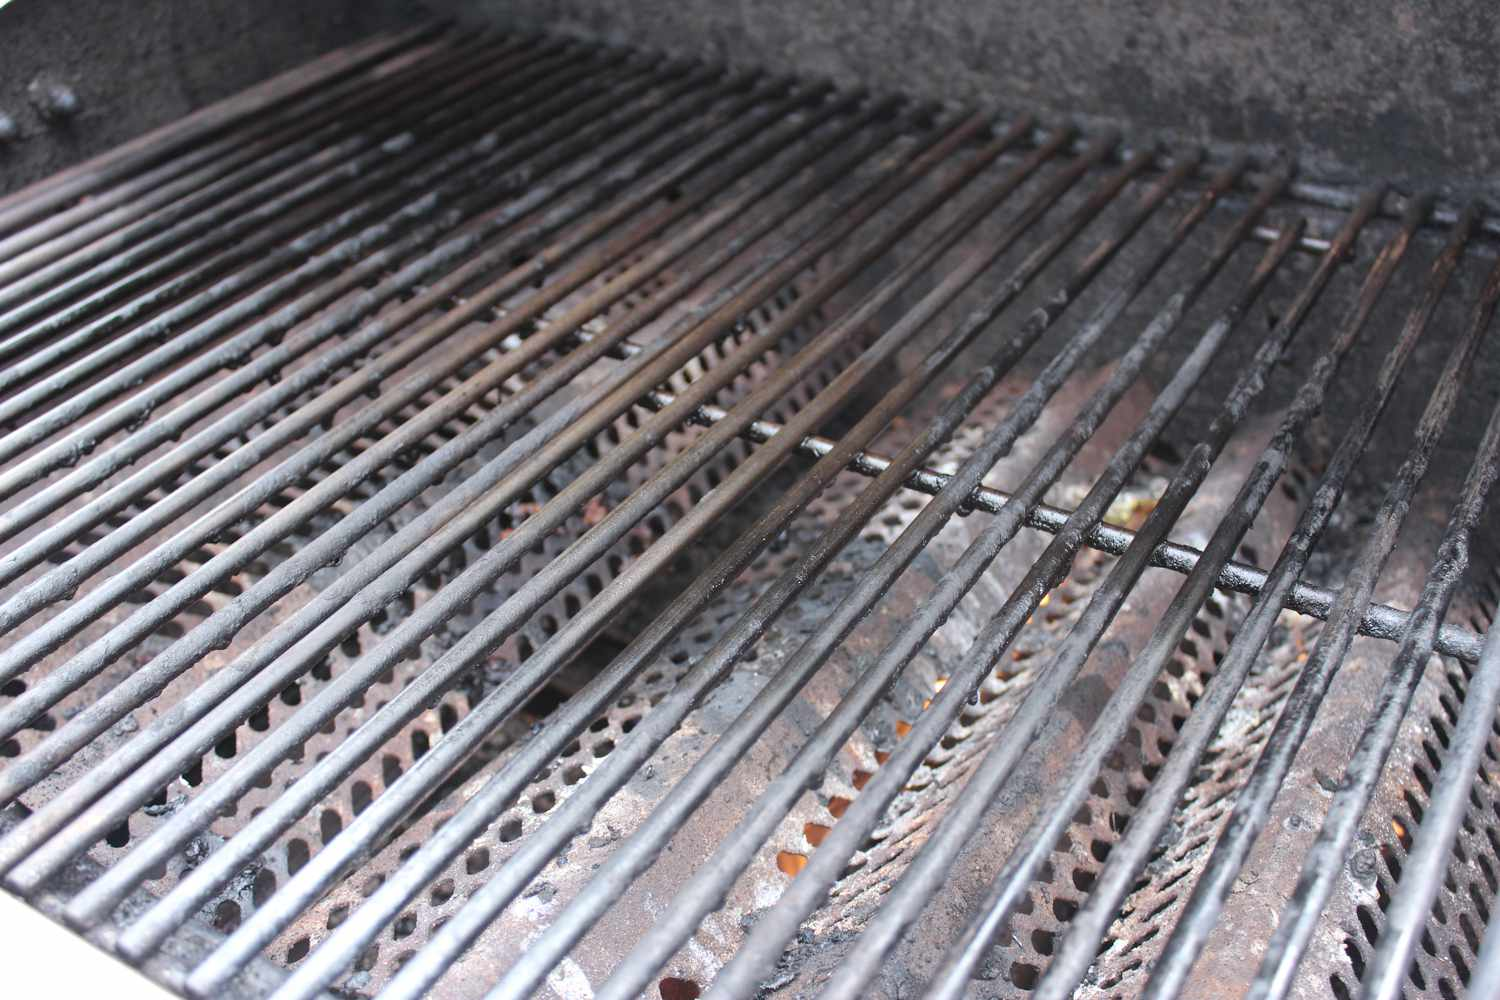 Brush grill with cooking oil